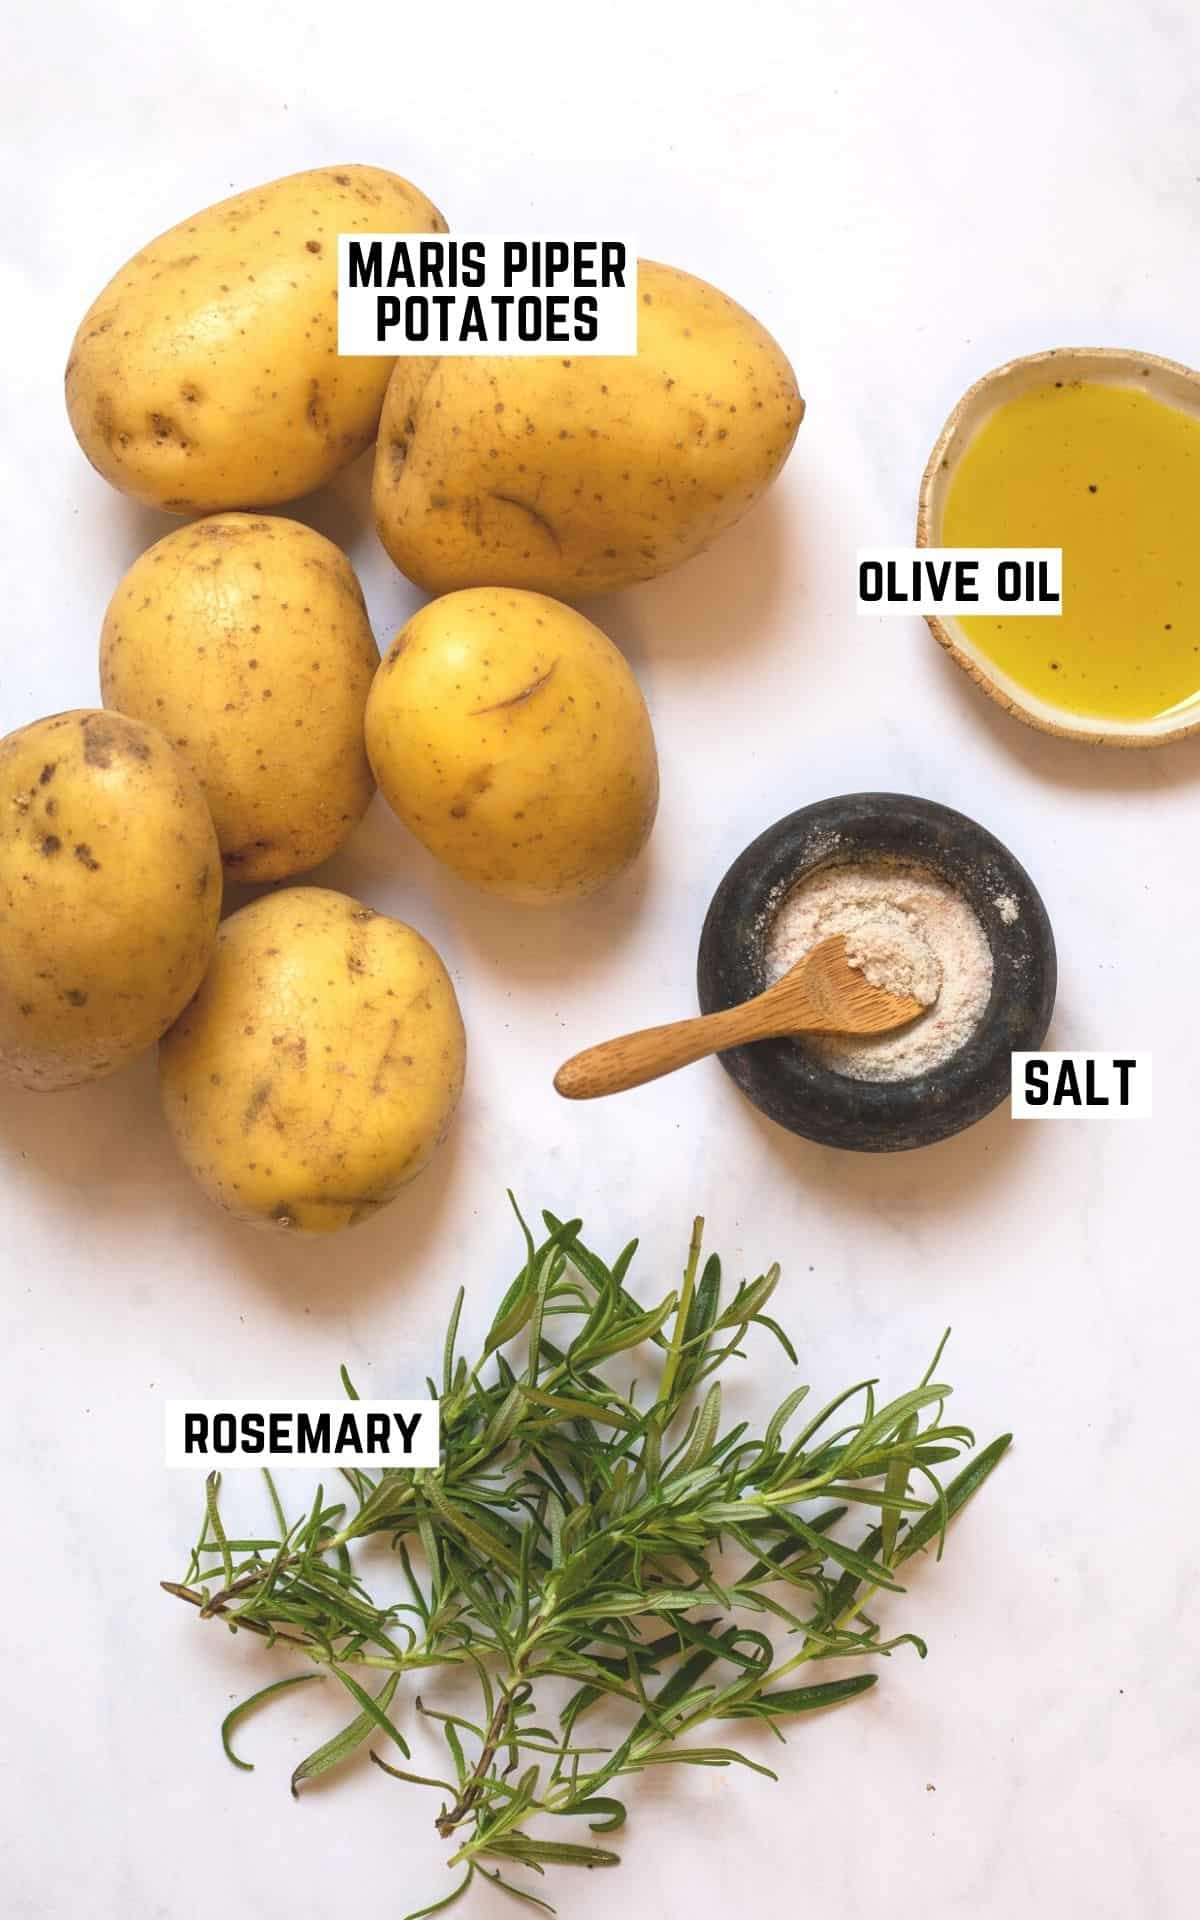 ingredient flatlay for roast potatoes: maris piper potatoes, olive oil, salt, and fresh rosemary